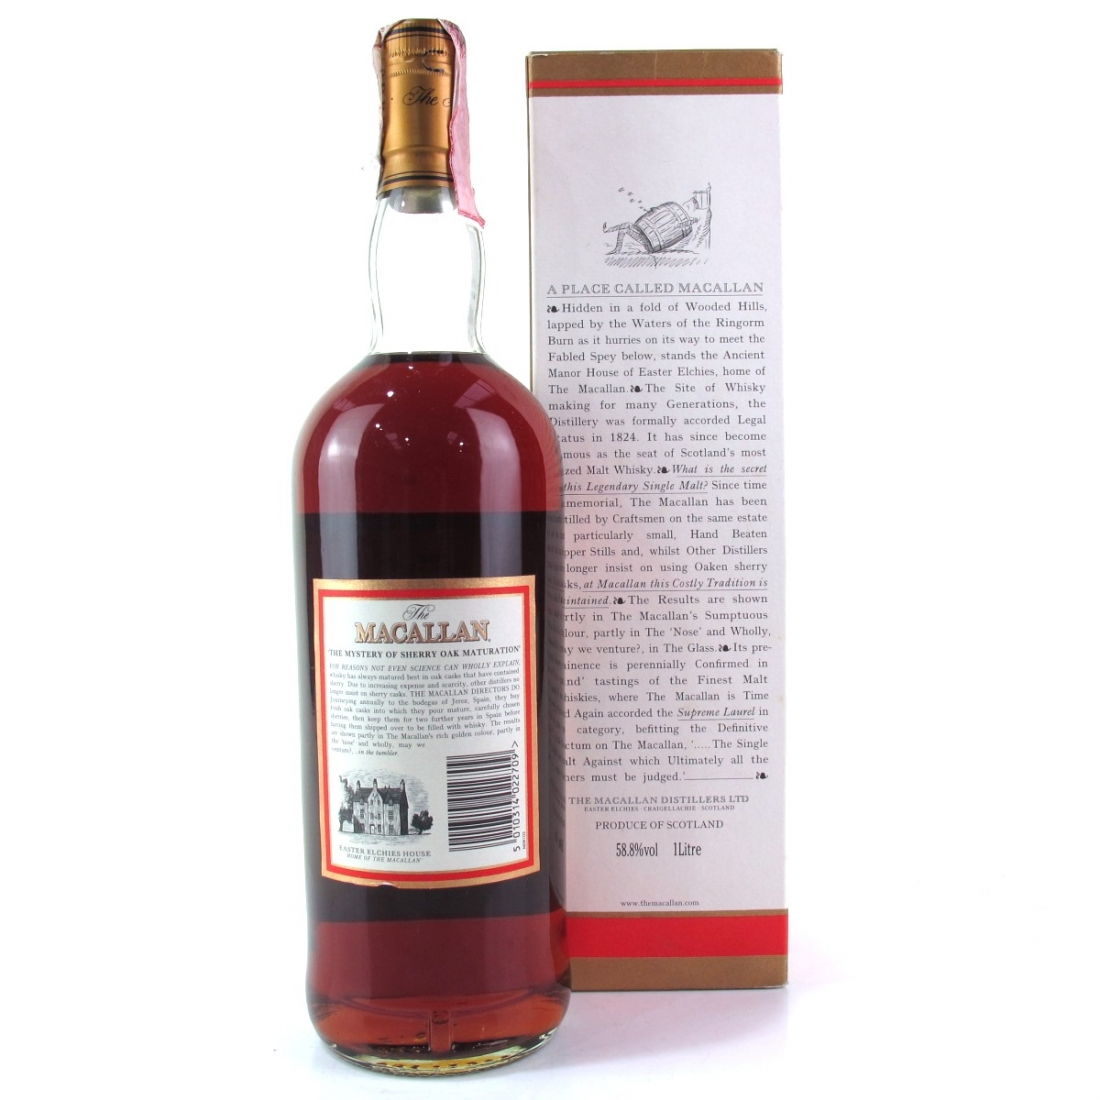 Macallan 10 Year Old Cask Strength 1 Litre